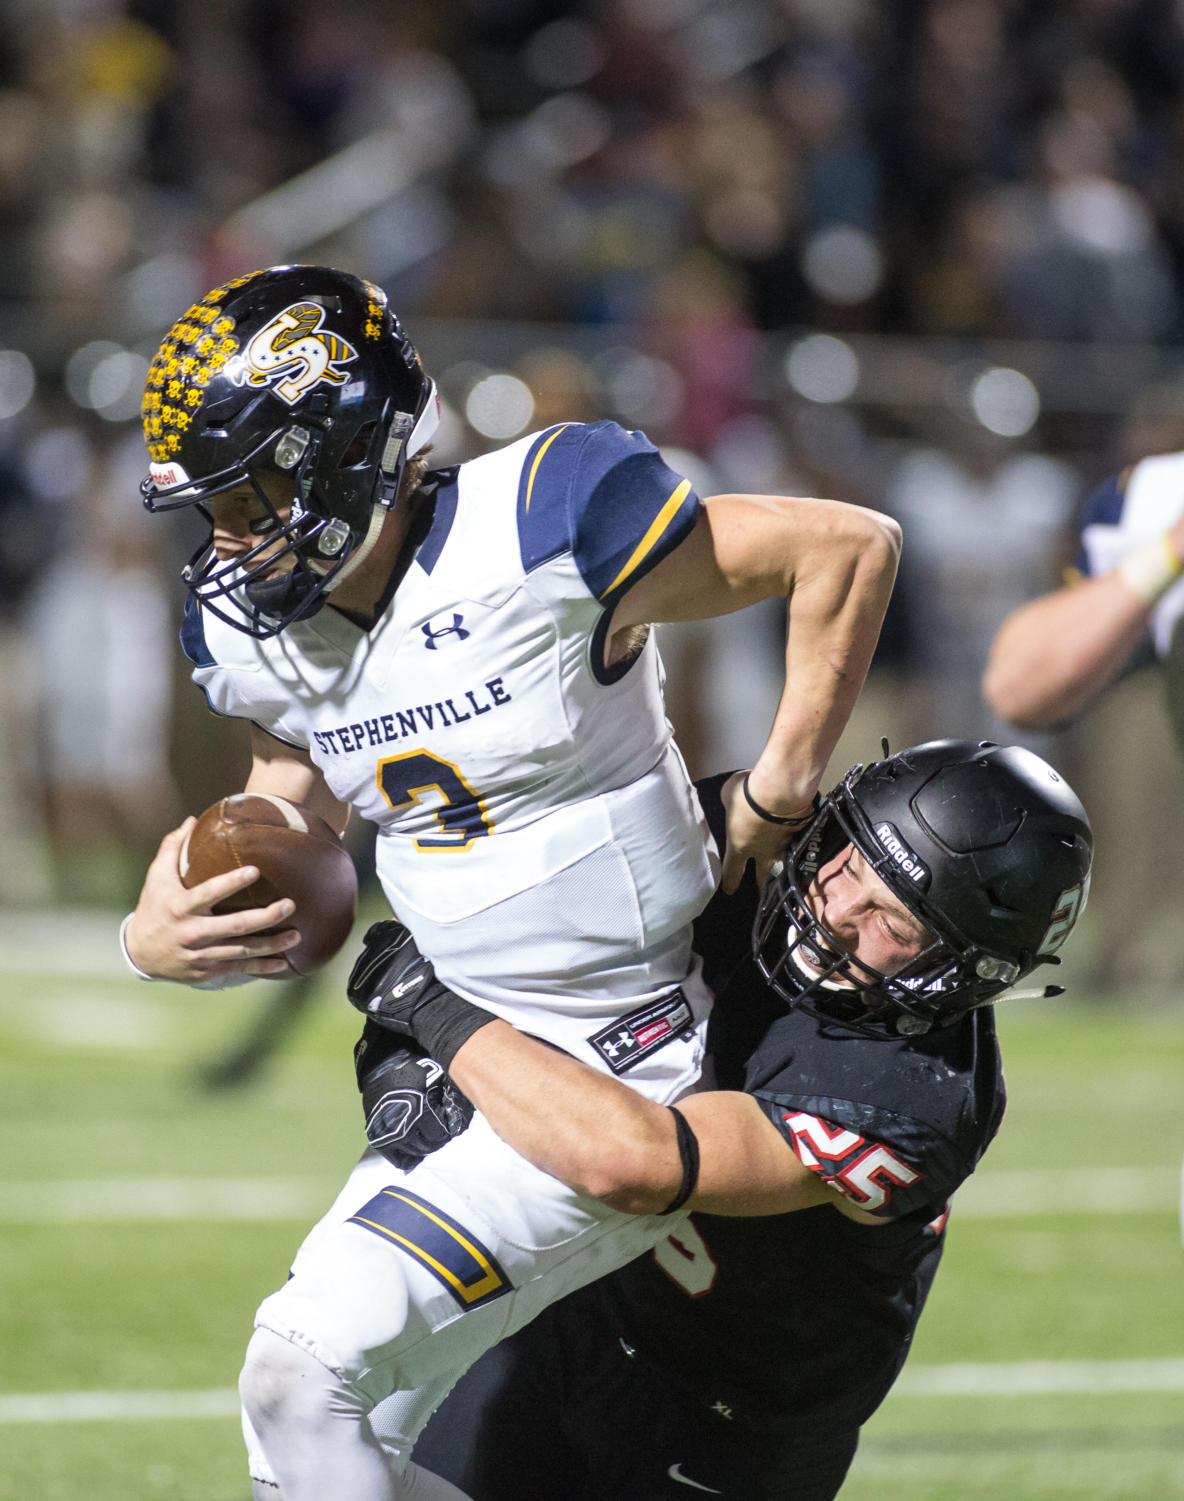 The Eagles take on Stephenville on Dec. 2, 2017 at Vernon Newsome Stadium in Mansfield, Texas. (Christopher Piel/The Talon News)